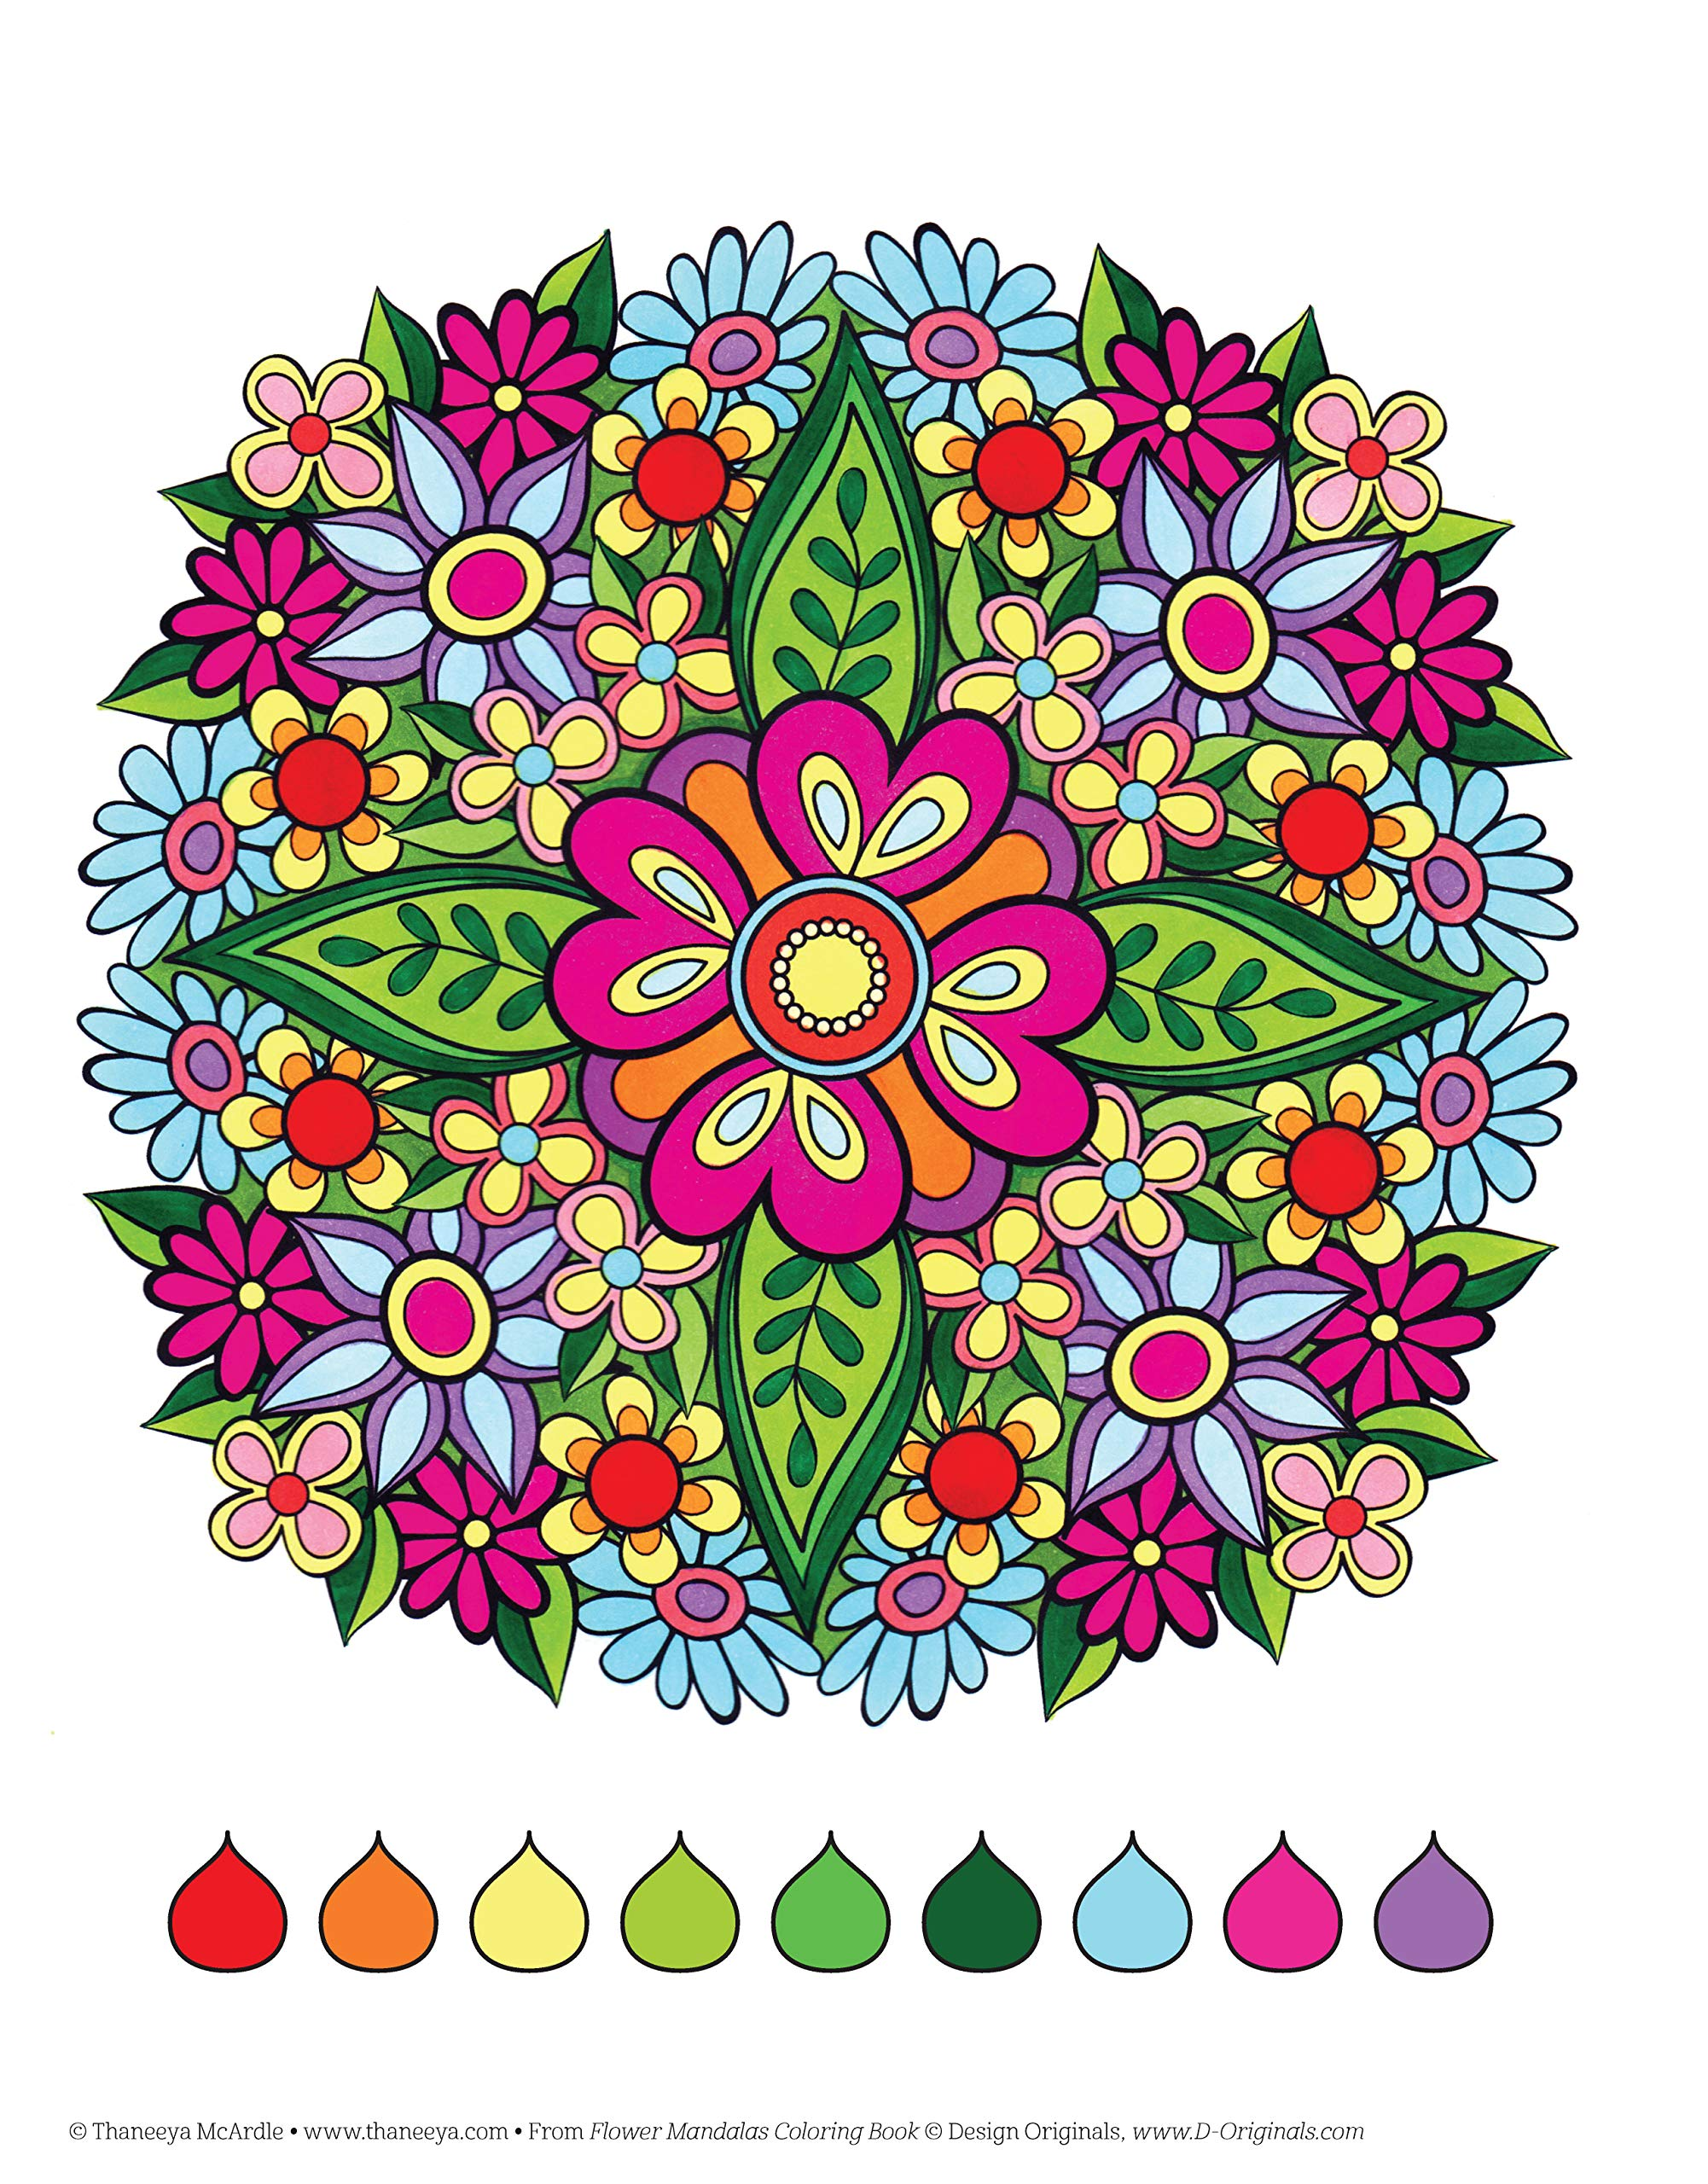 - Amazon.com: Flower Mandalas Coloring Book (Design Originals) 30